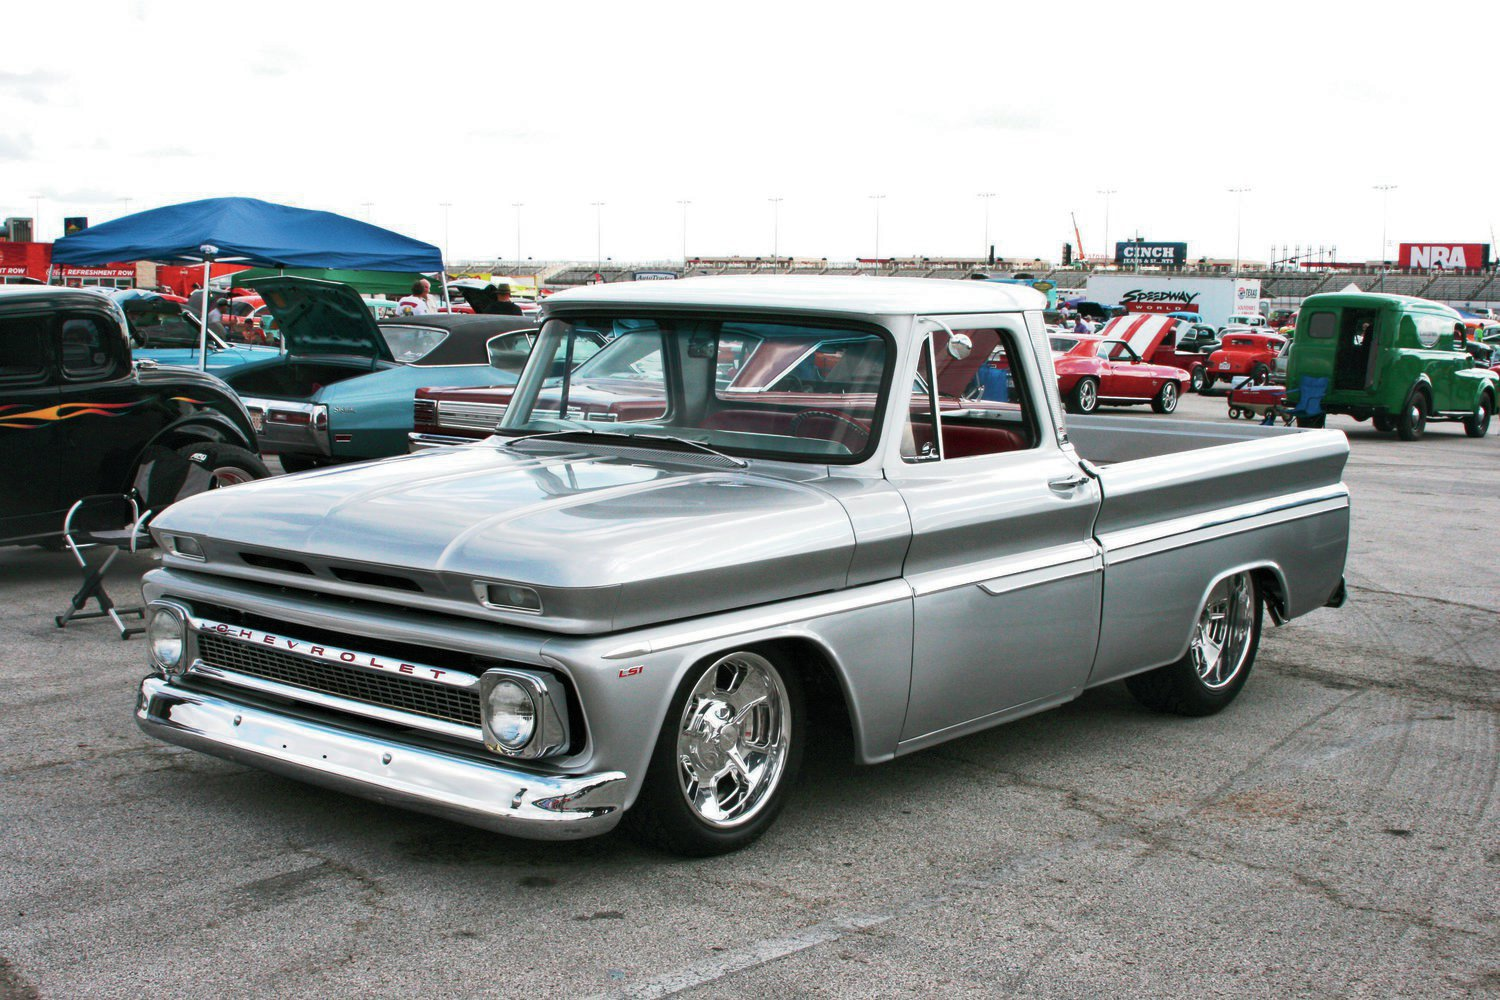 Another of my favorite pickups at the show was Greg Hampton's 1965 Chevy C10. This classy cruiser is powered by an LS1 backed by a 4L60E overdrive automatic. Its white-over-silver two-tone paint, Billet Specialties wheels, and perfect stance are on the money.